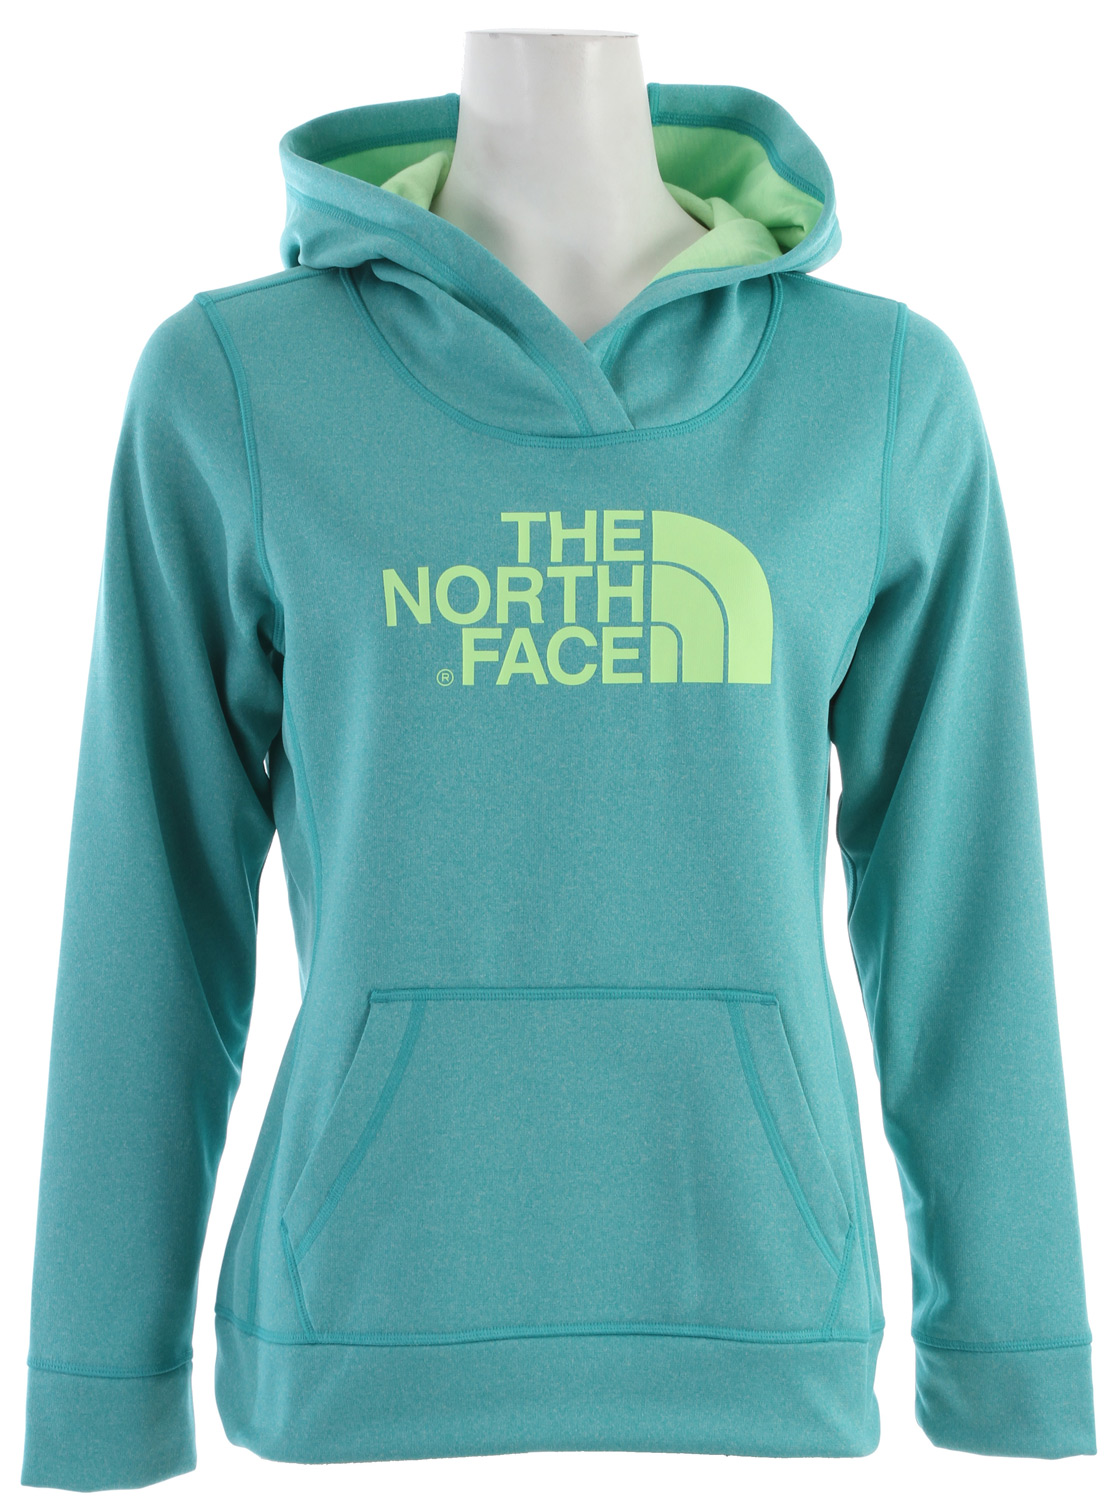 "The Fave-Our-Ite collection is perfect for wearing to and from races or the gym, and during recovery. Key Features of the The North Face Fave-Our-Ite Pullover Hoodie: Relaxed fit Kangaroo pocket with interior media pocket Thumb loops Three-piece hood with liner Center back: 26"" Fabric: 210 g/m2 (6.2 oz/yd2) 100% polyester jersey-faced fleece—UPF 50 - $38.95"